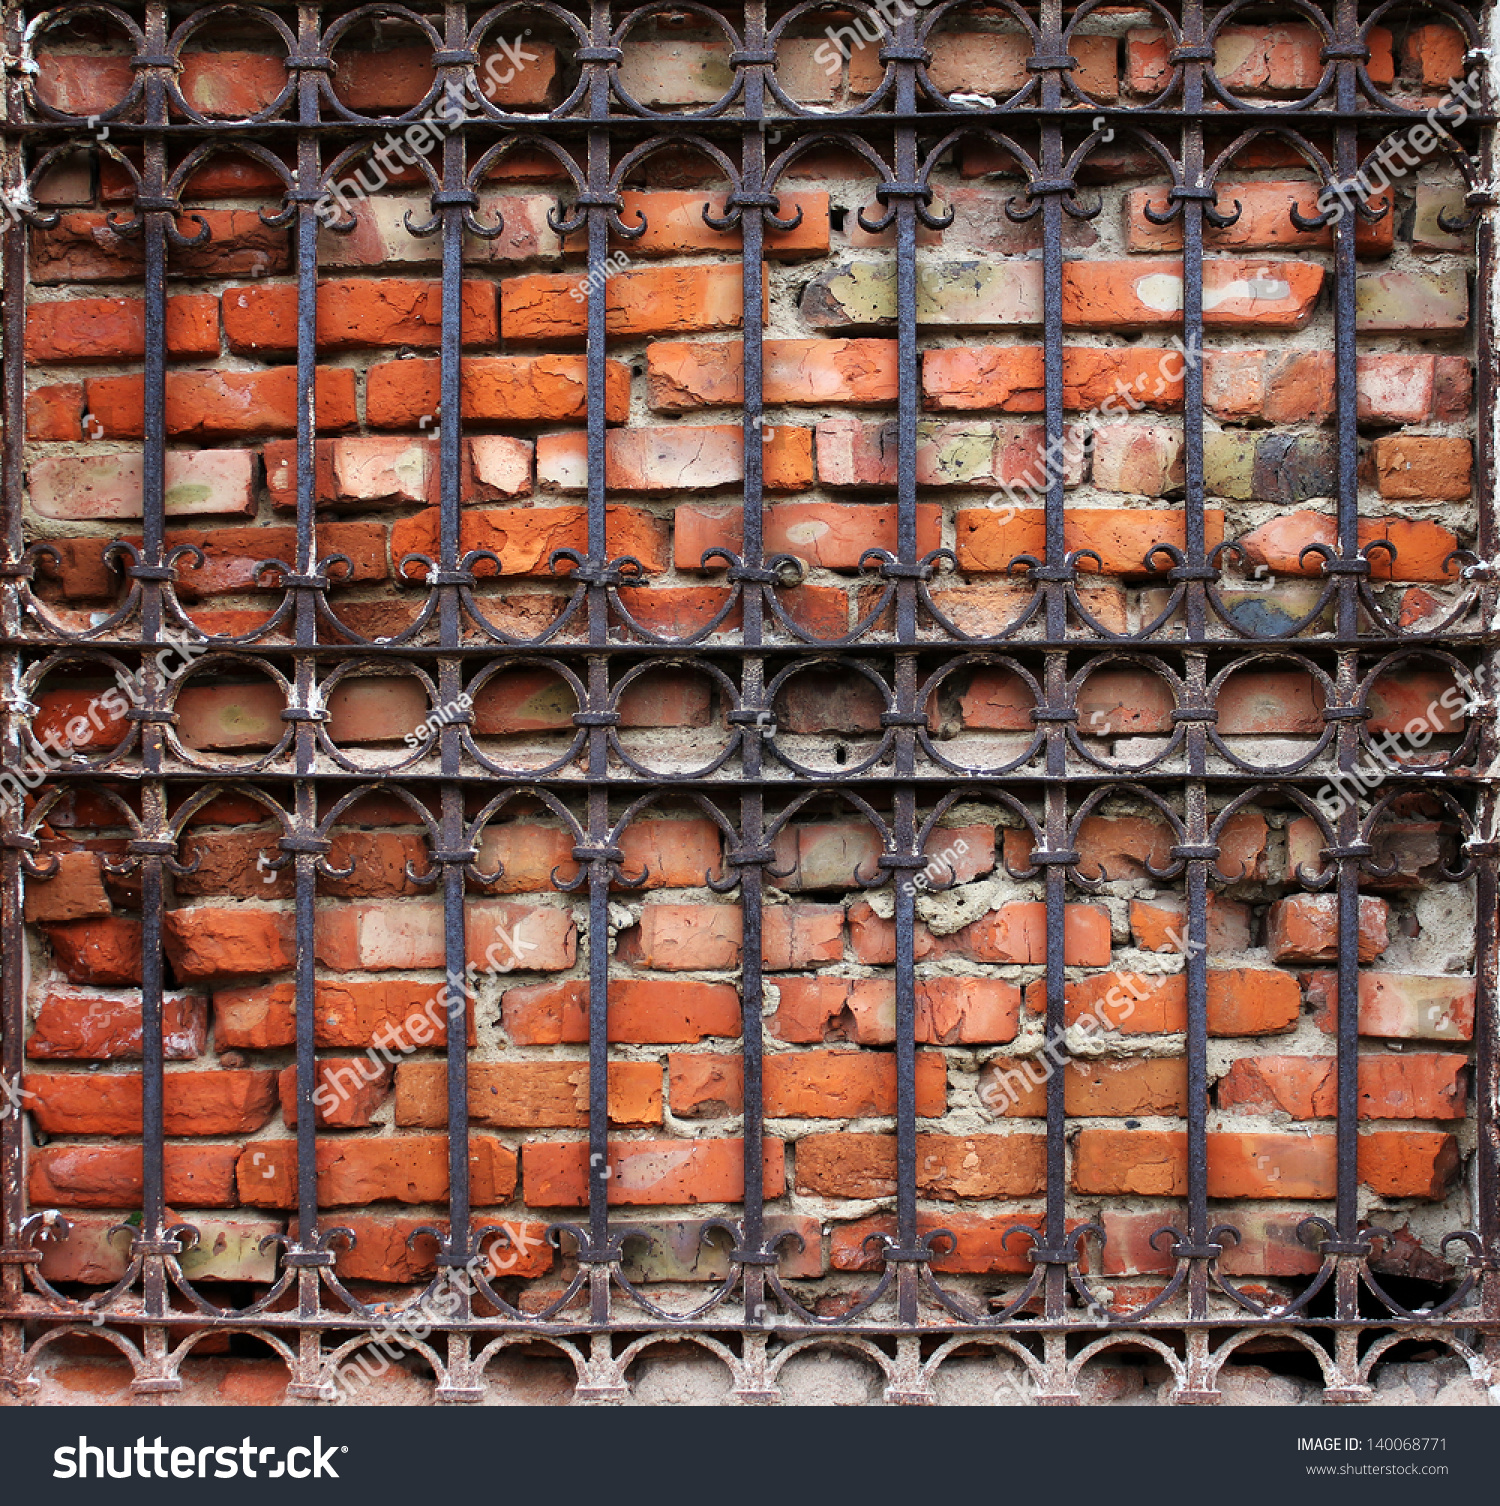 Decorative Metal Grates Old Vintage Decorative Metal Grate And Brickwall Background Stock